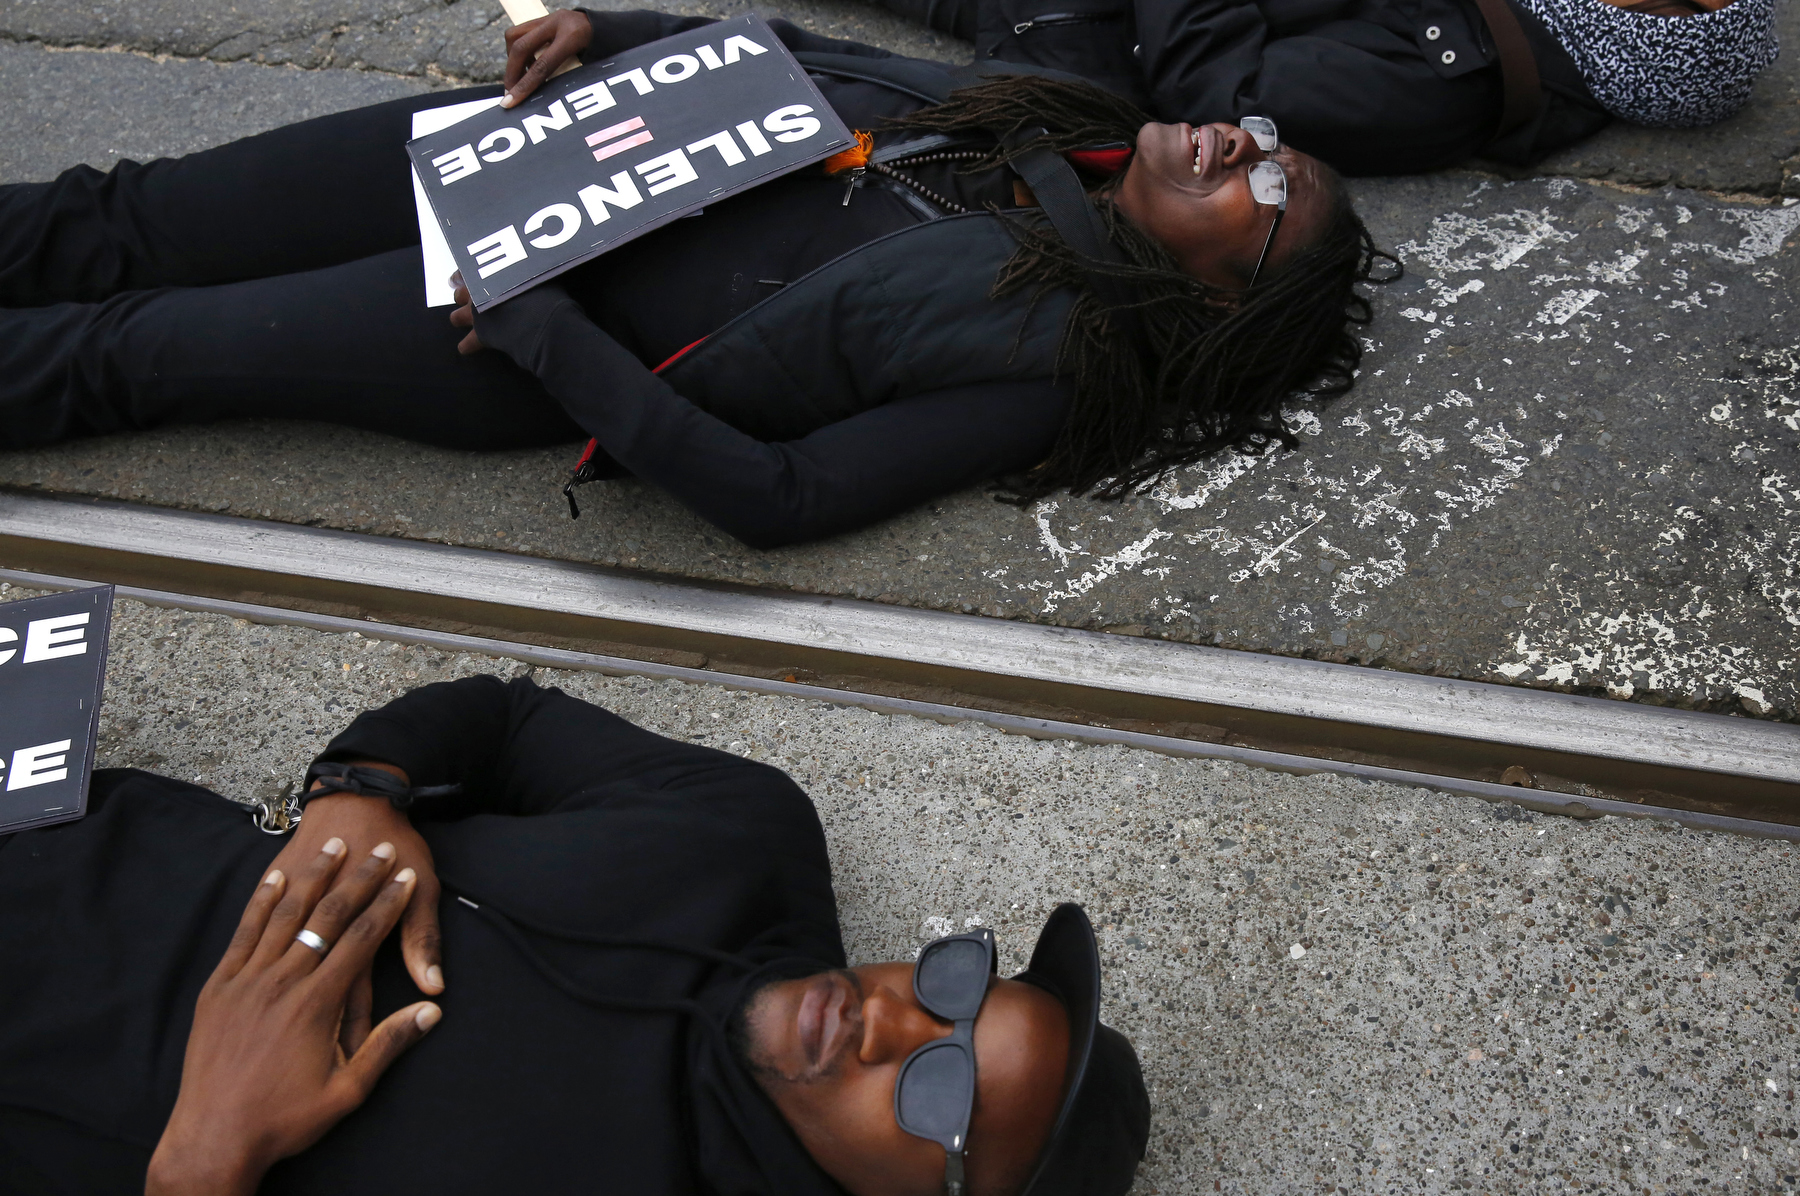 From left, Sampson McCormick, Kin Folkz and Puck Lo lay in the street as they observe four and a half minutes of silence while blocking the 101 south freeway entrance and exit ramps at the intersection of Octavia and Market streets during a {quote}LGBT Rally and March for an End to Police Violence{quote} Dec. 24, 2014 in San Francisco, Calif.